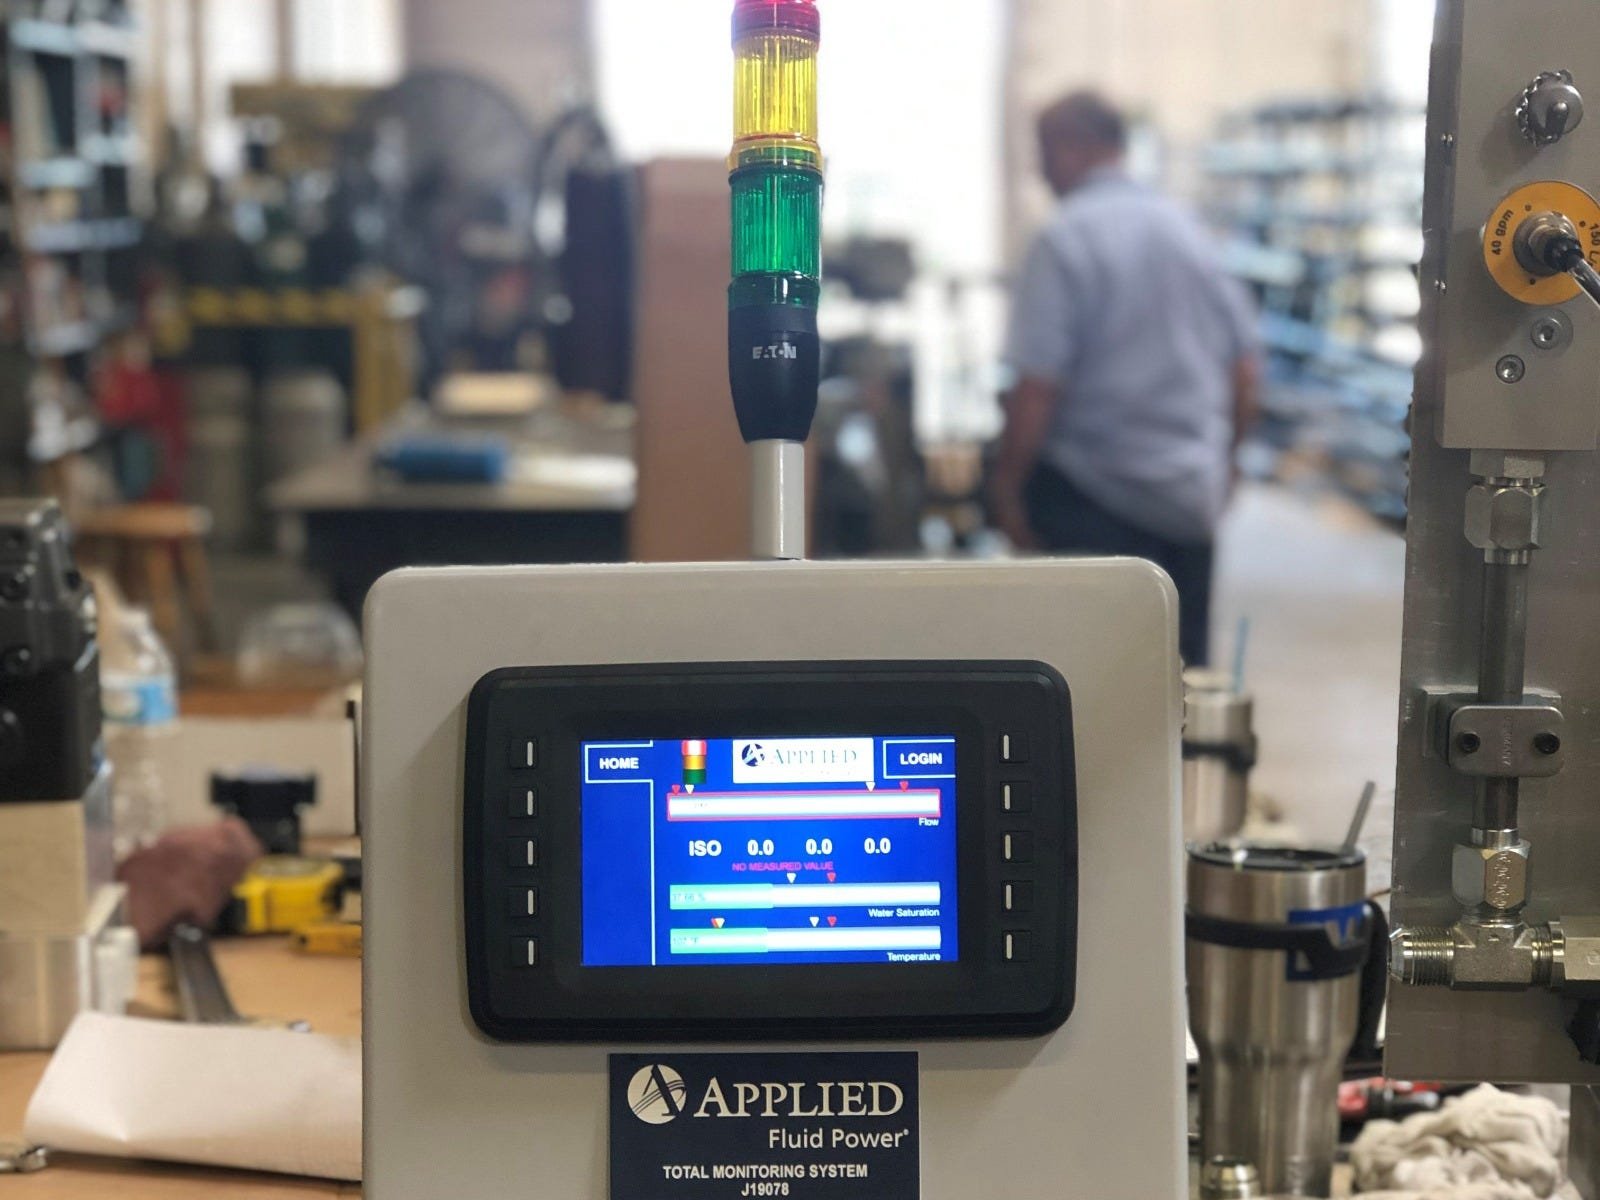 Design with Safety in Mind - Applied Fluid Power Total Monitoring System